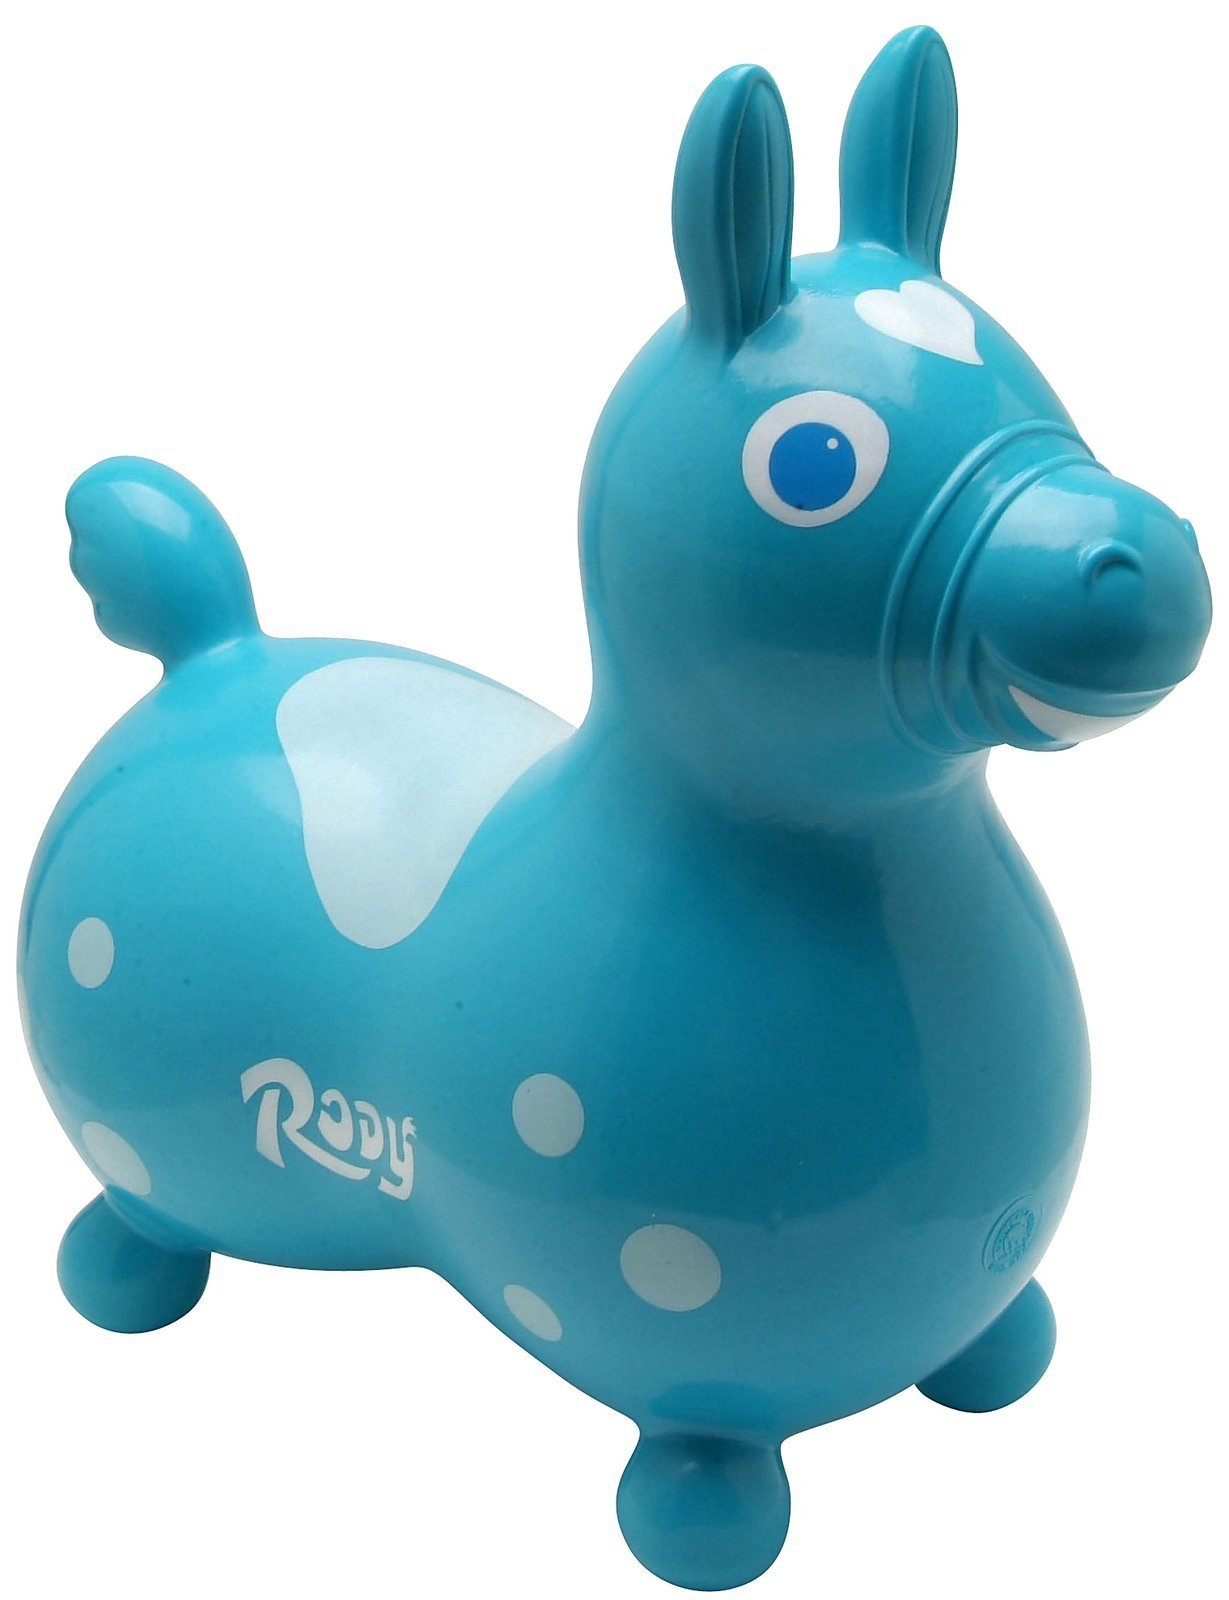 Gymnic Rody Horse - Teal by Gymnic